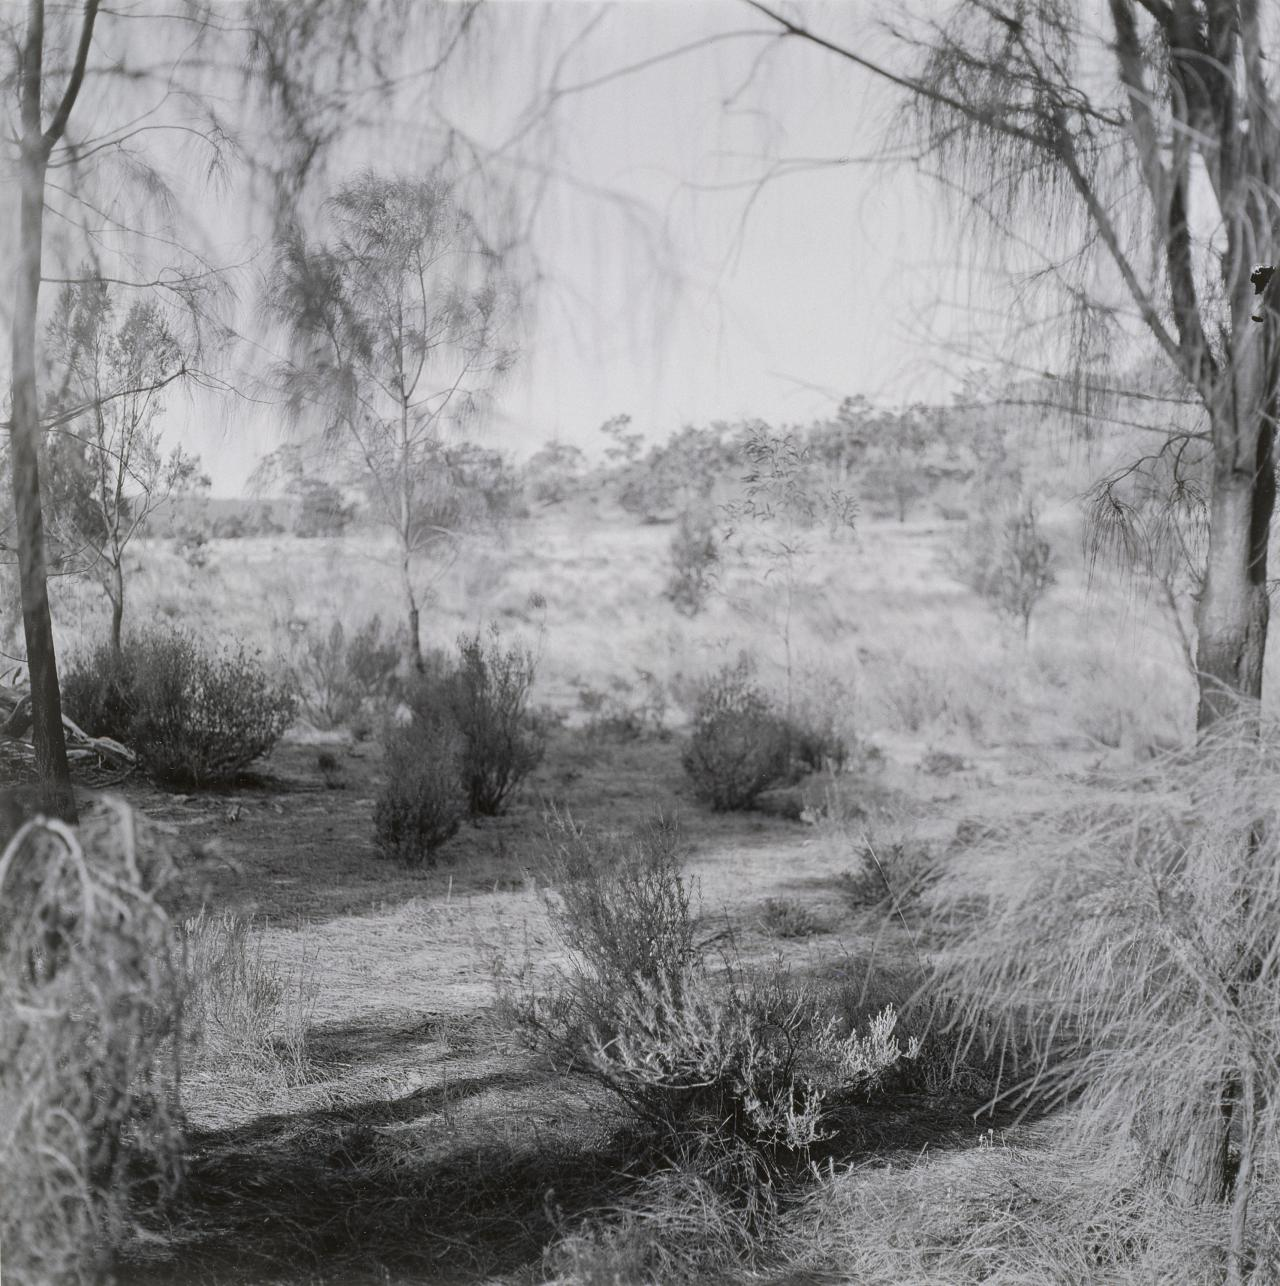 No title (Landscape with bush in centre foreground) from the Black Range series, 1986-96